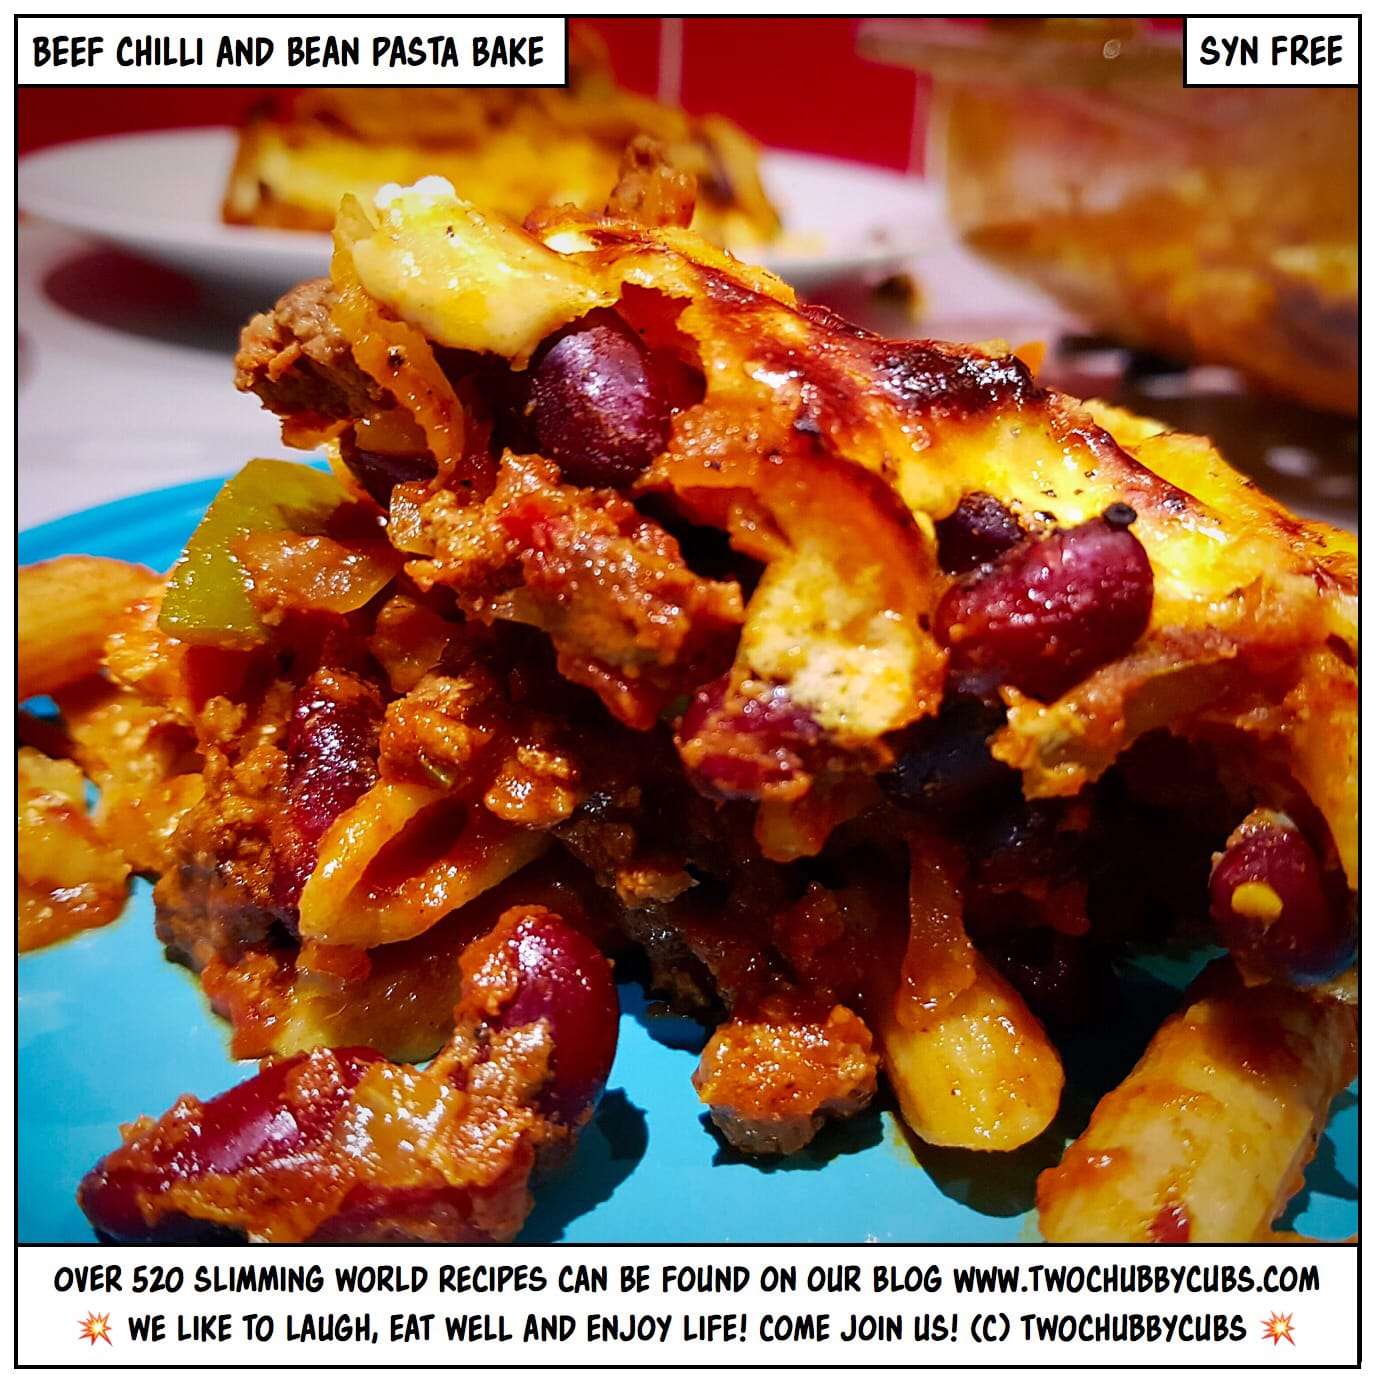 beef chilli and bean pasta bake - canny winter food ...